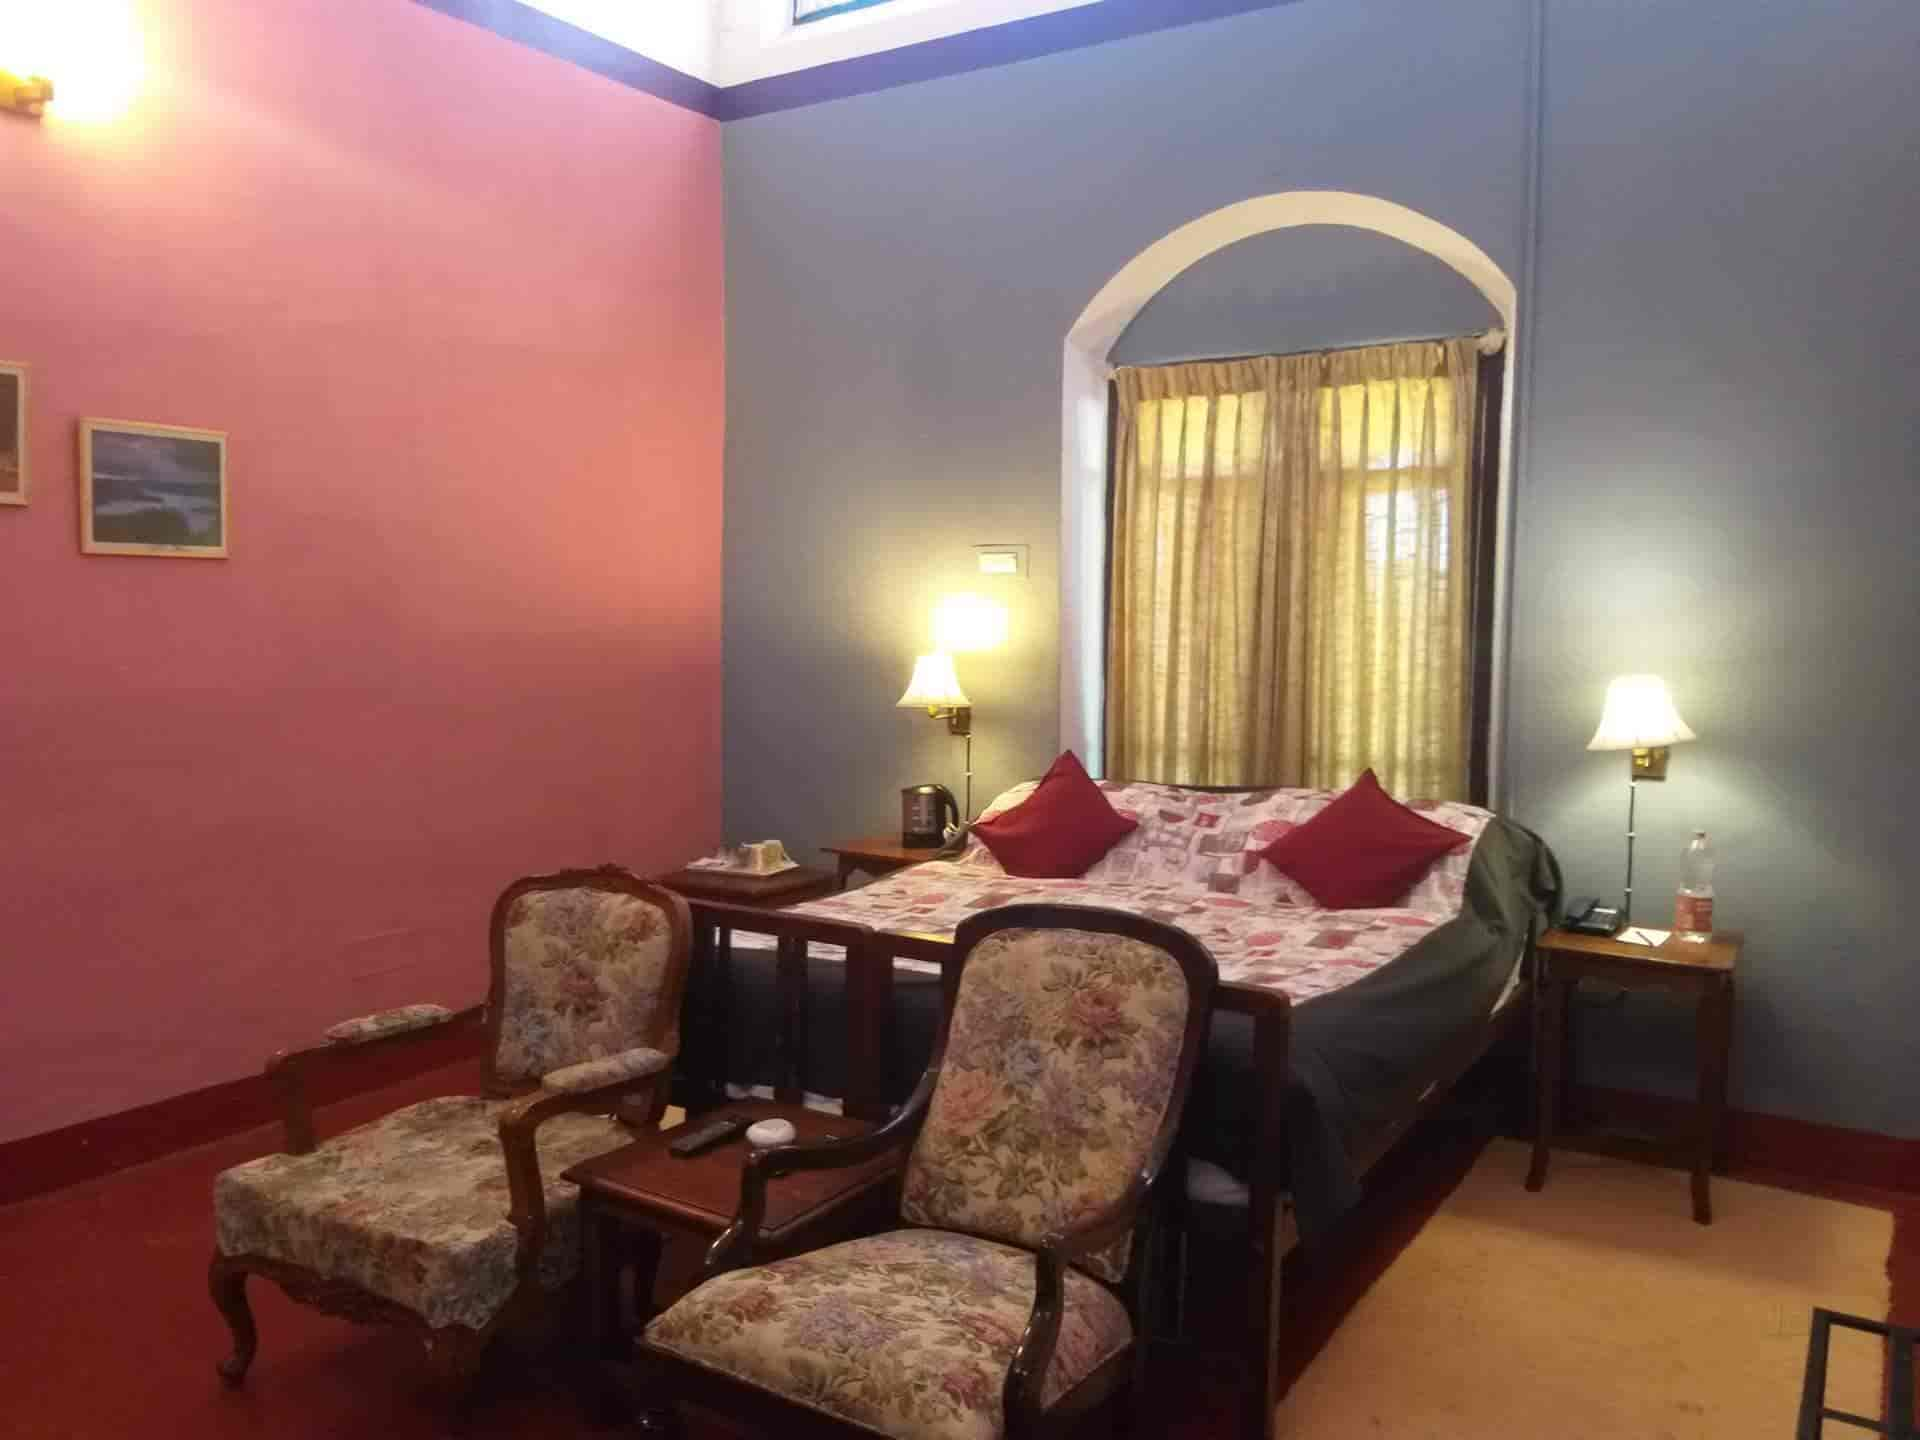 180 McIver, Near Sim's Park - Hotels in Coonoor - Justdial